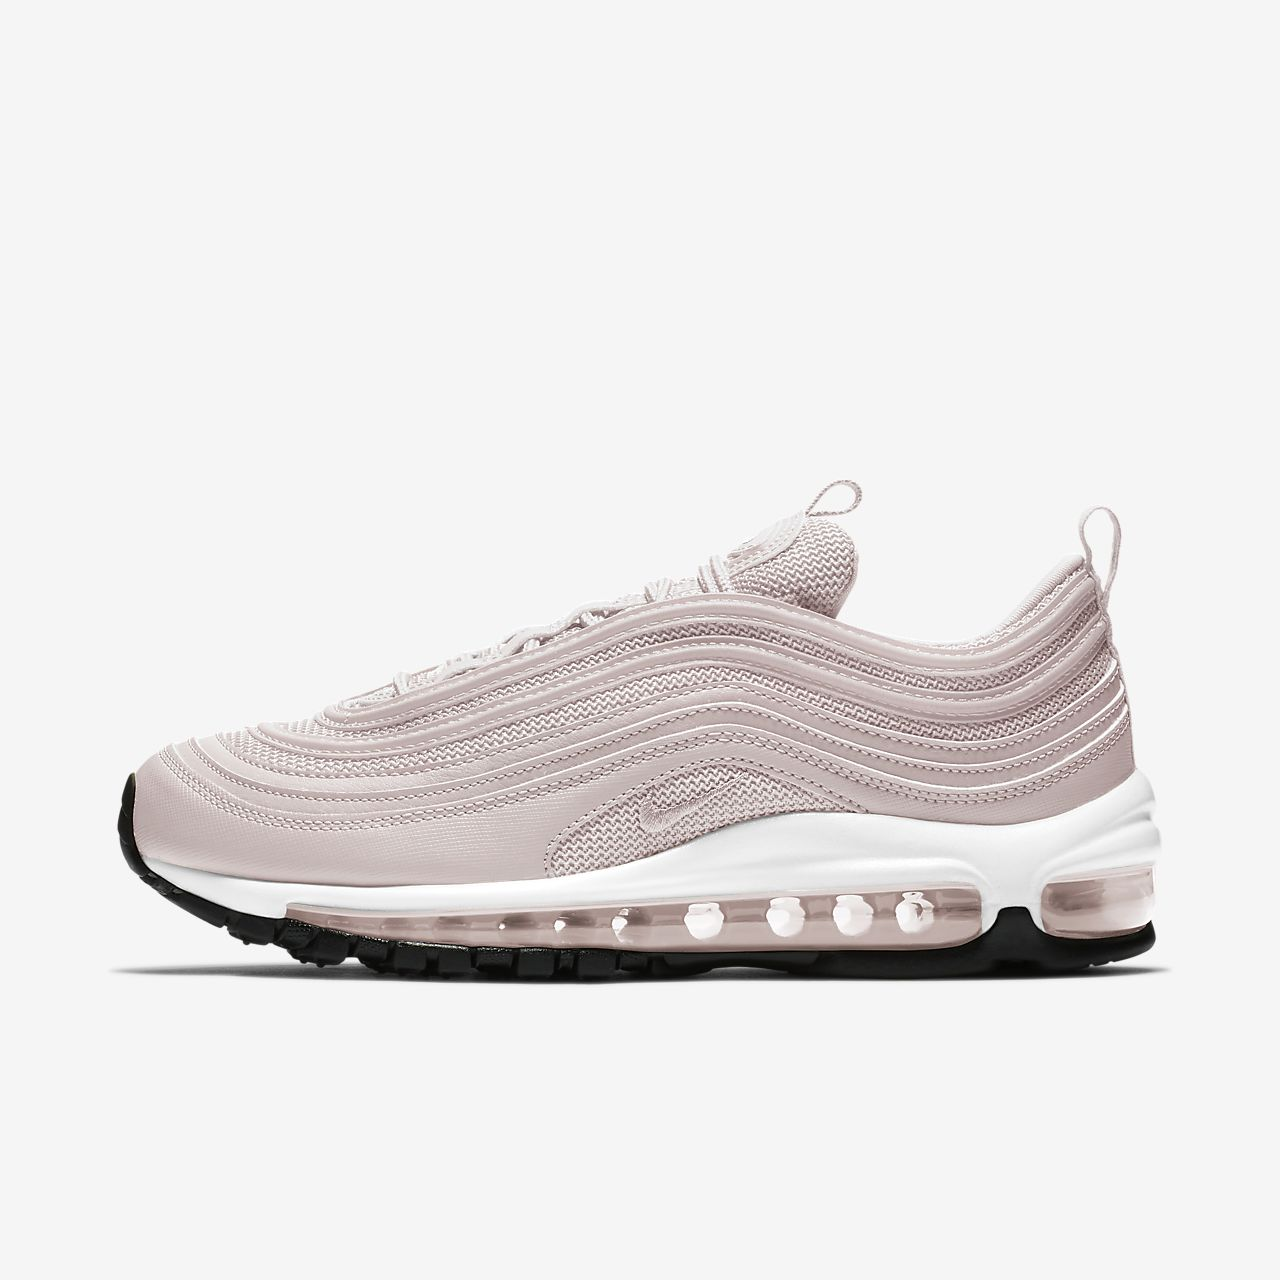 newest b87de 93dd2 Nike Air Max 97 Women's Shoe